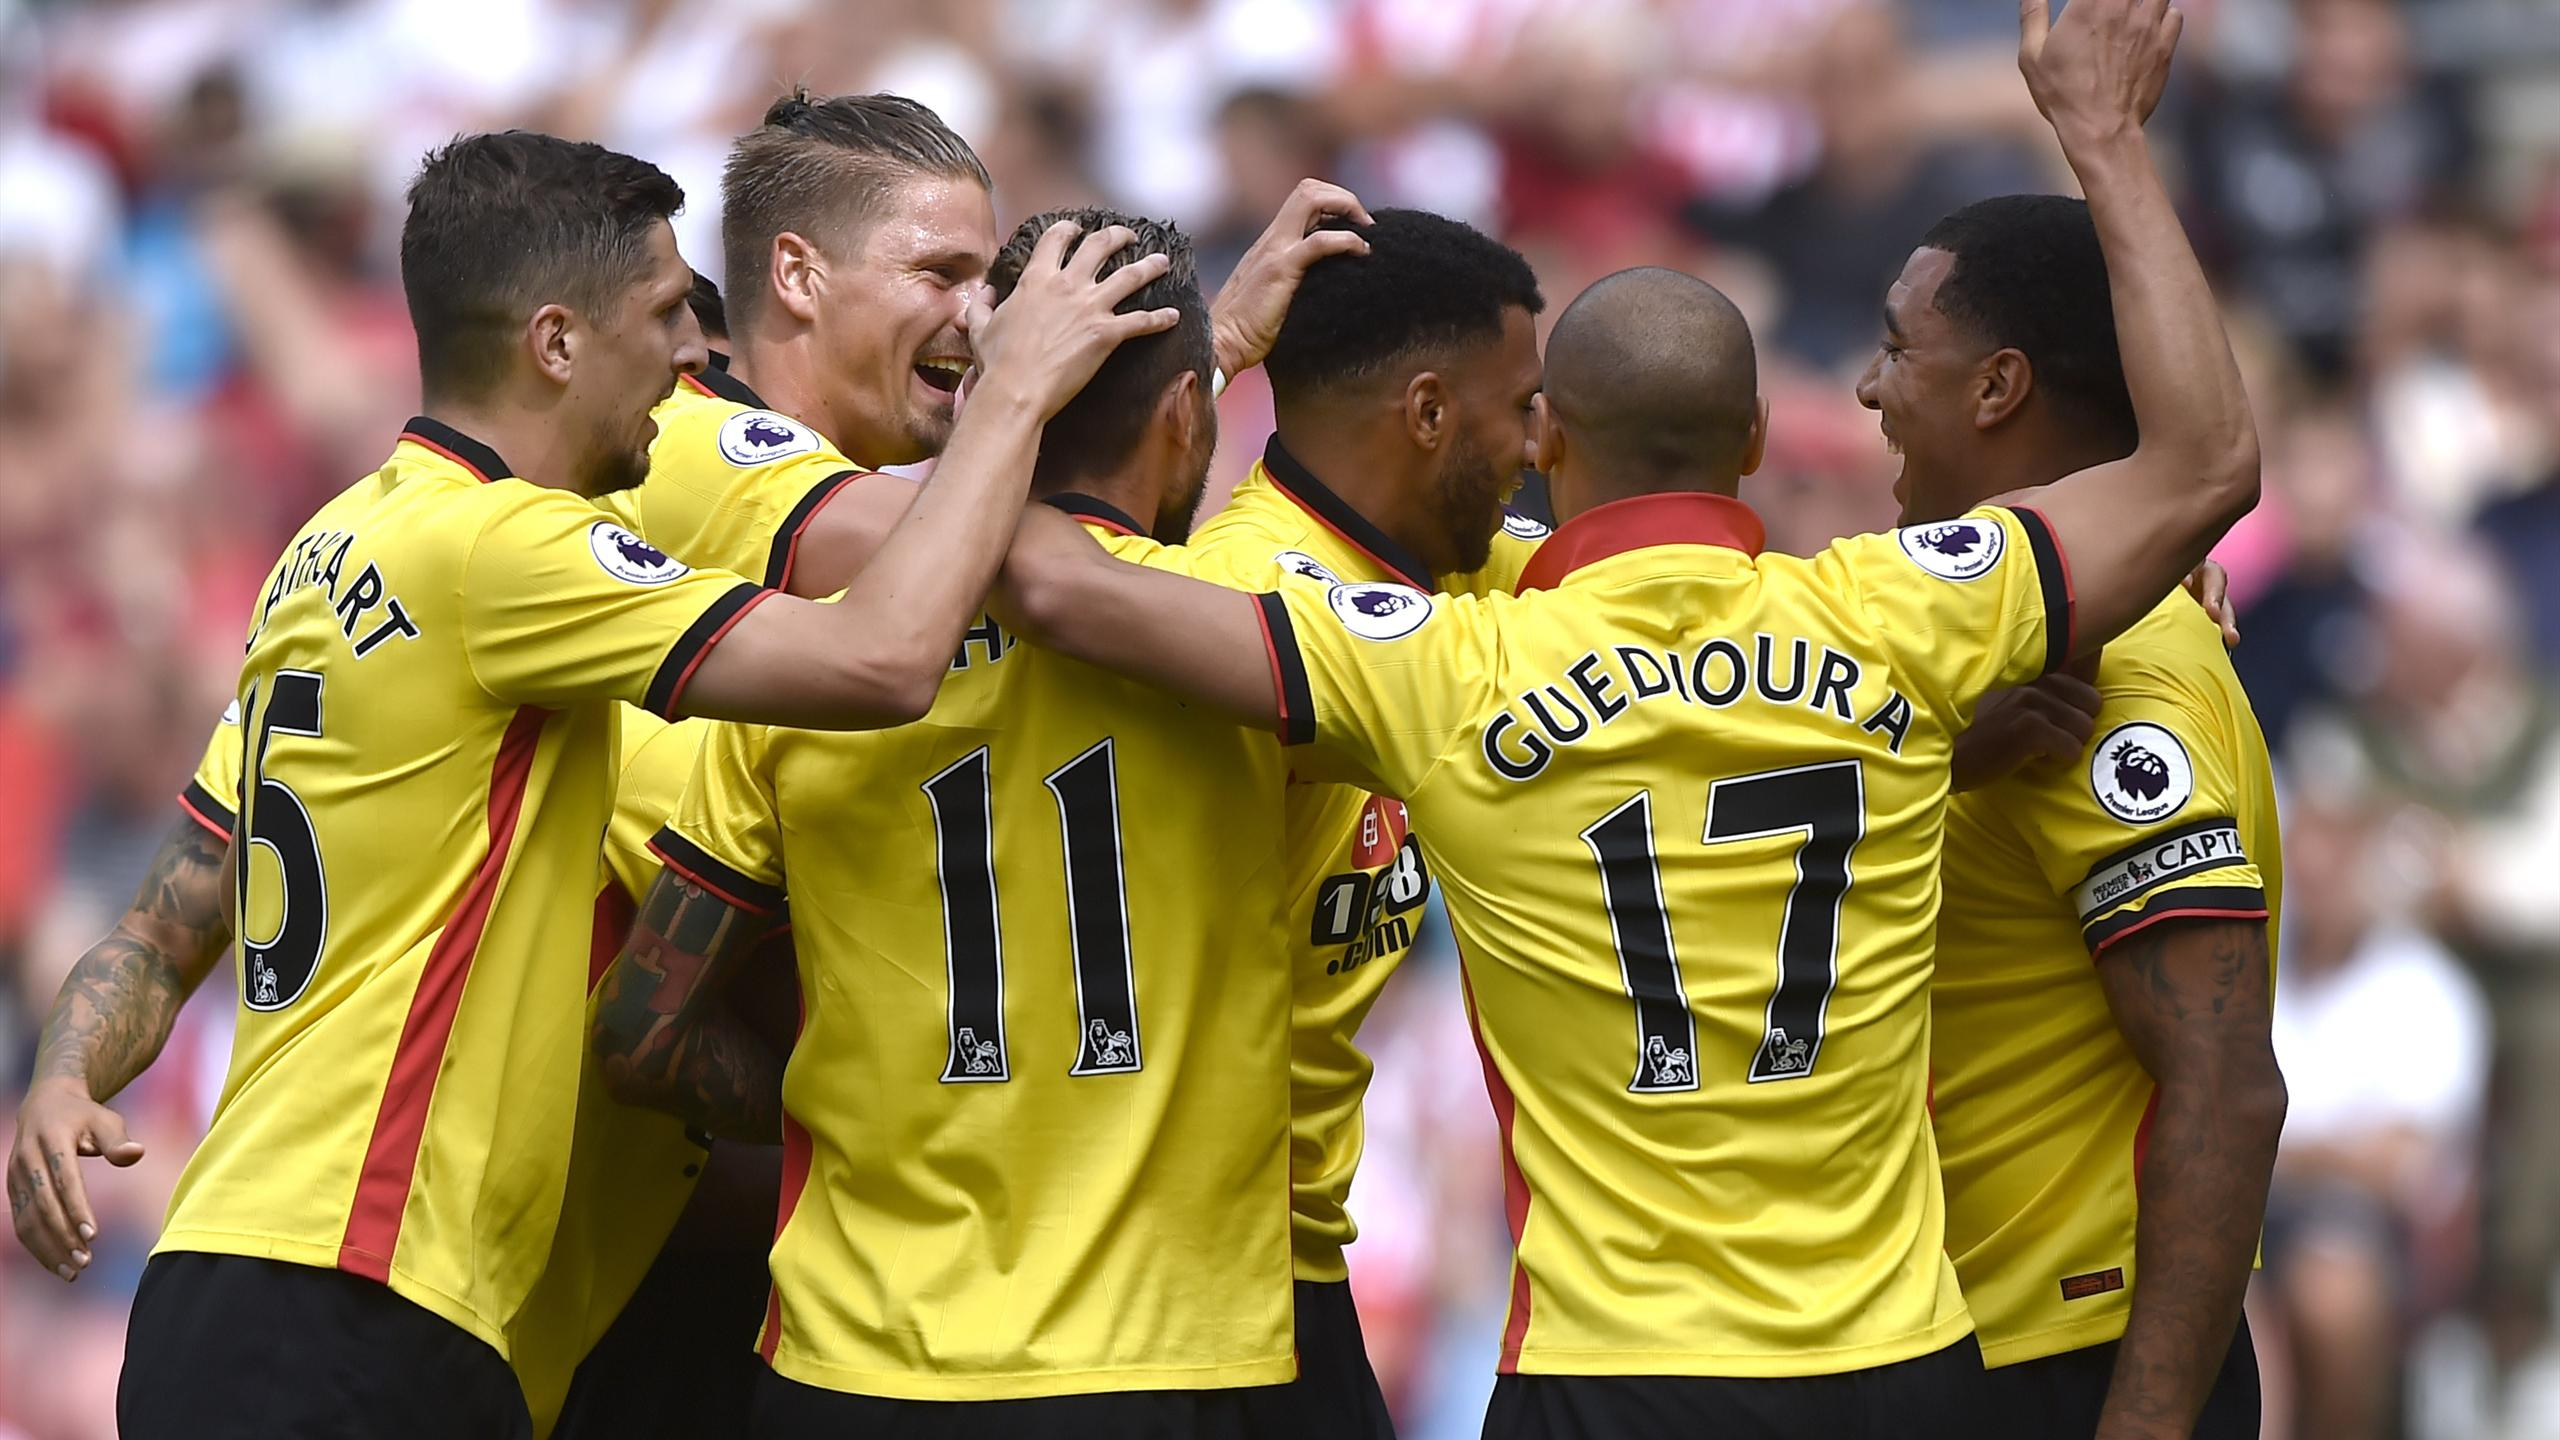 Watford's Etienne Capoue celebrates scoring their first goal with teammates